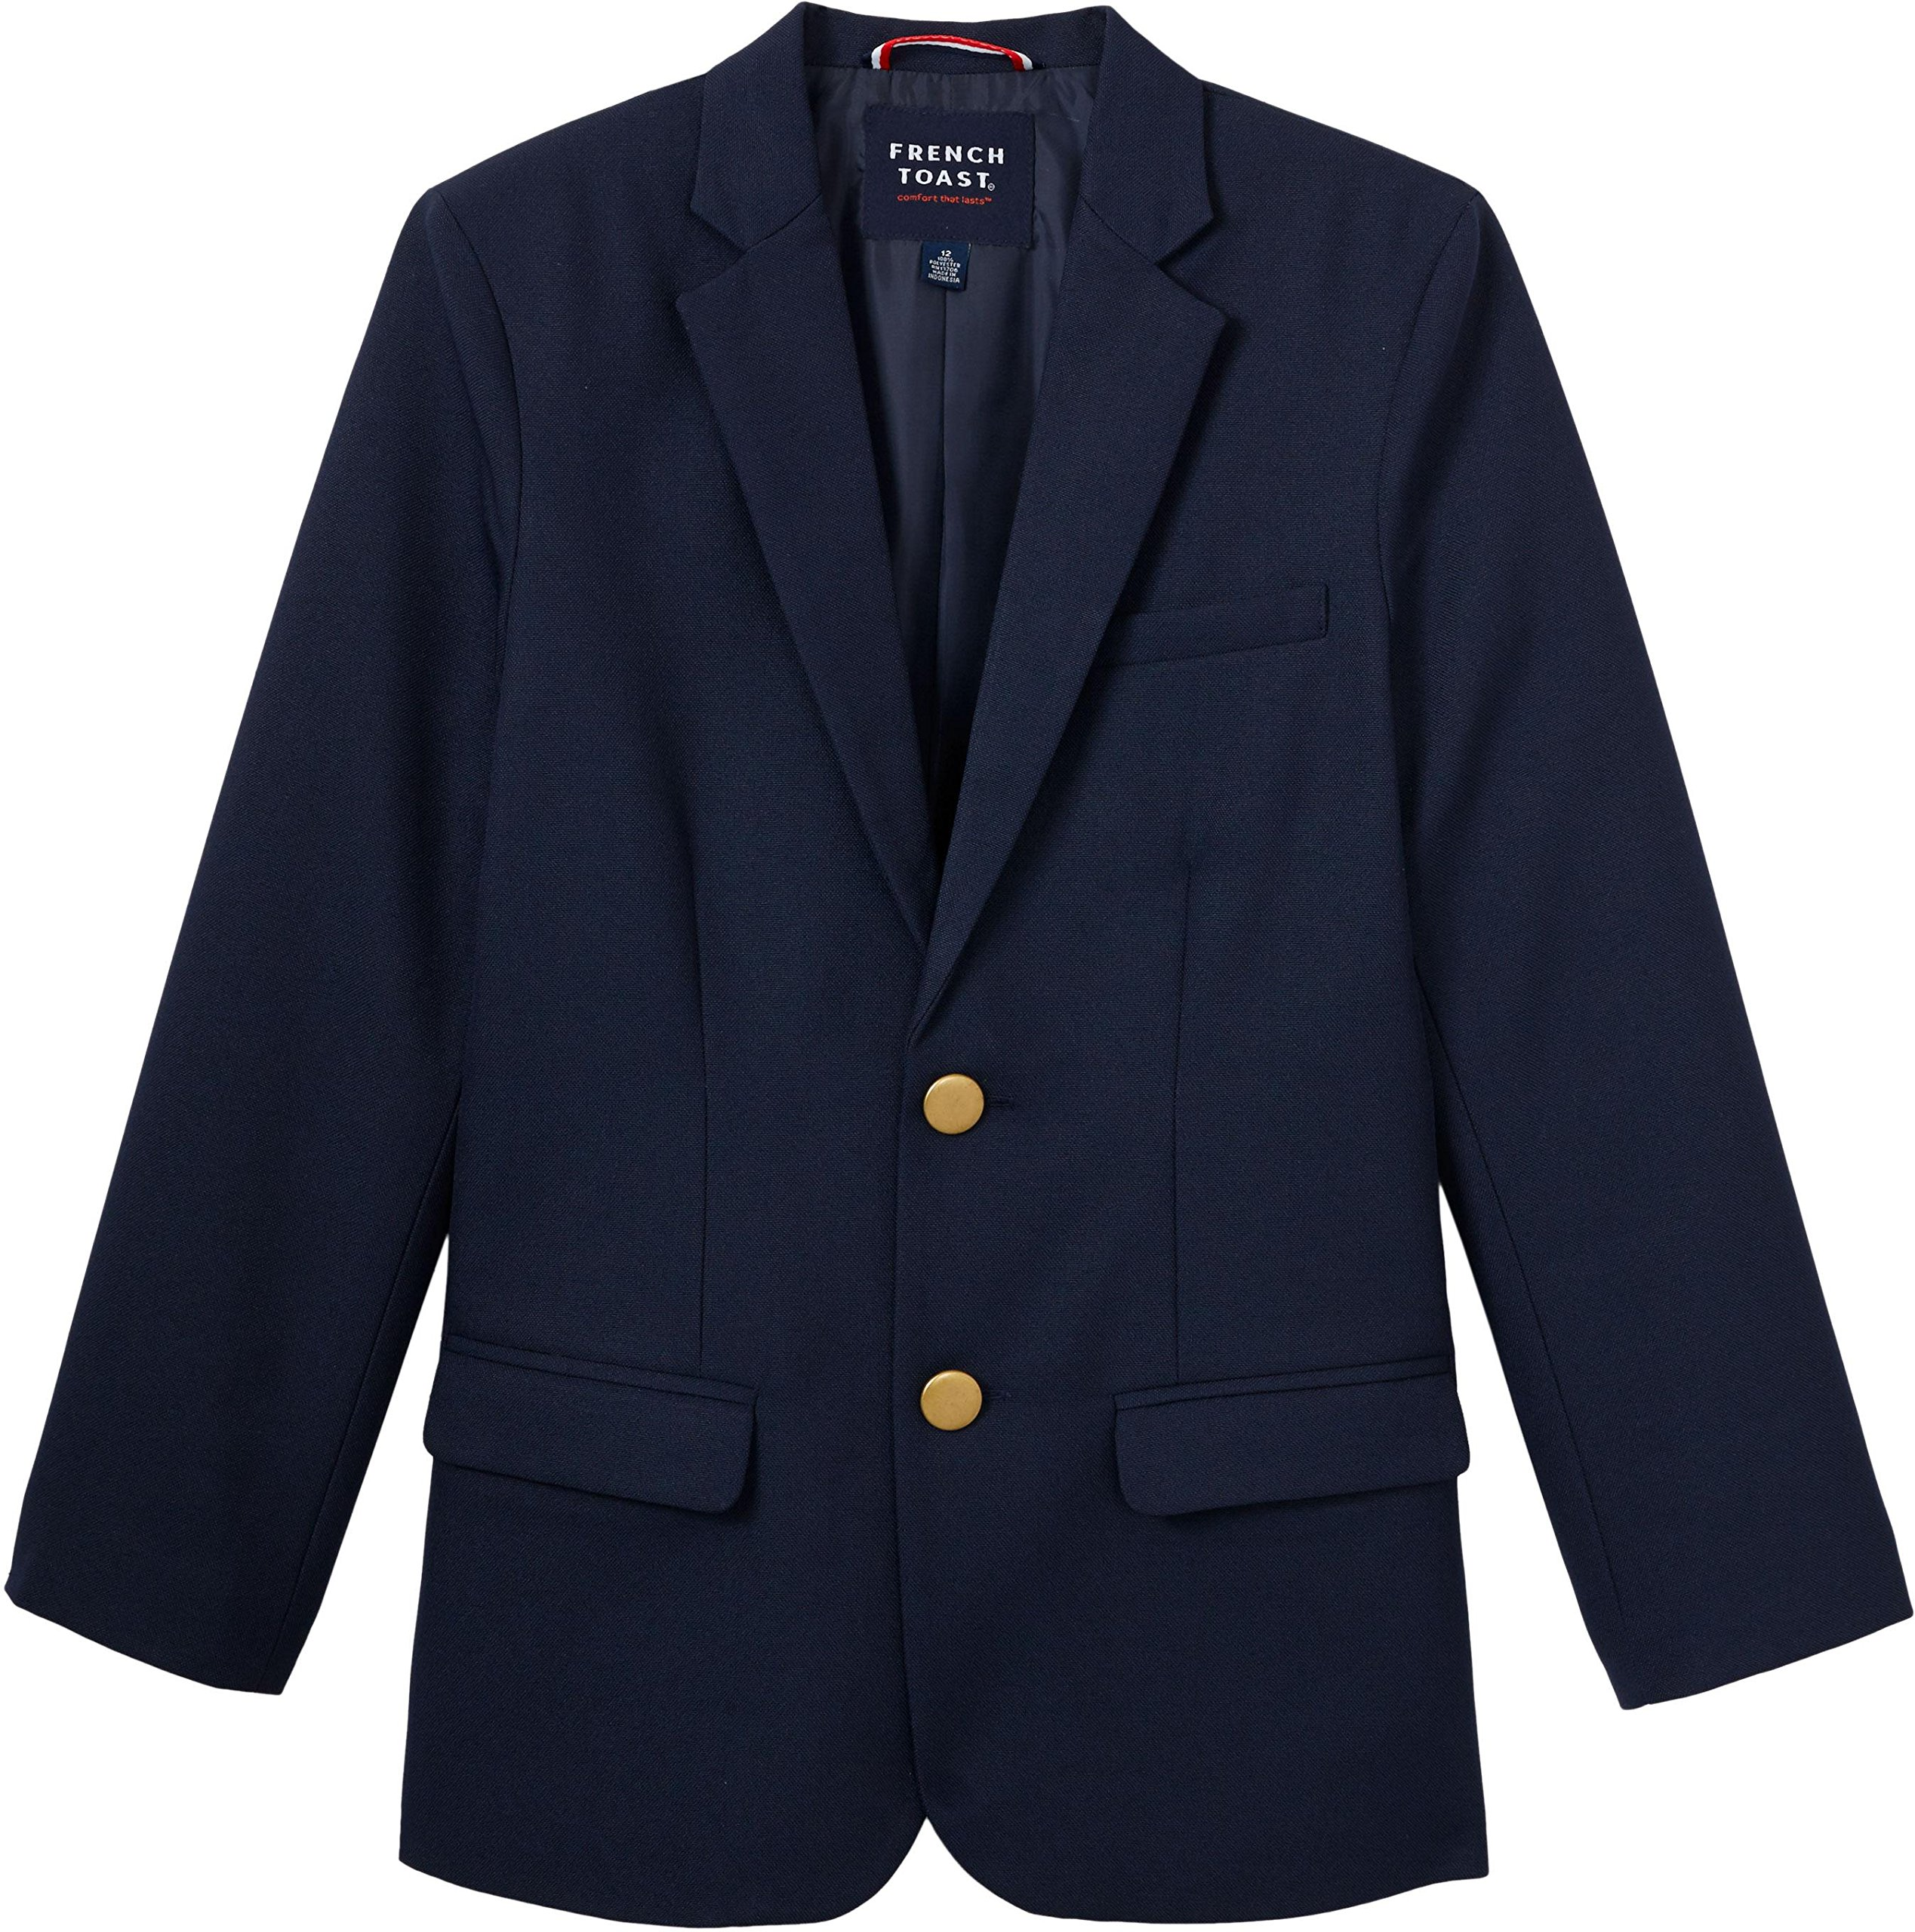 French Toast School Uniform Boys Classic School Blazer, Navy, 8